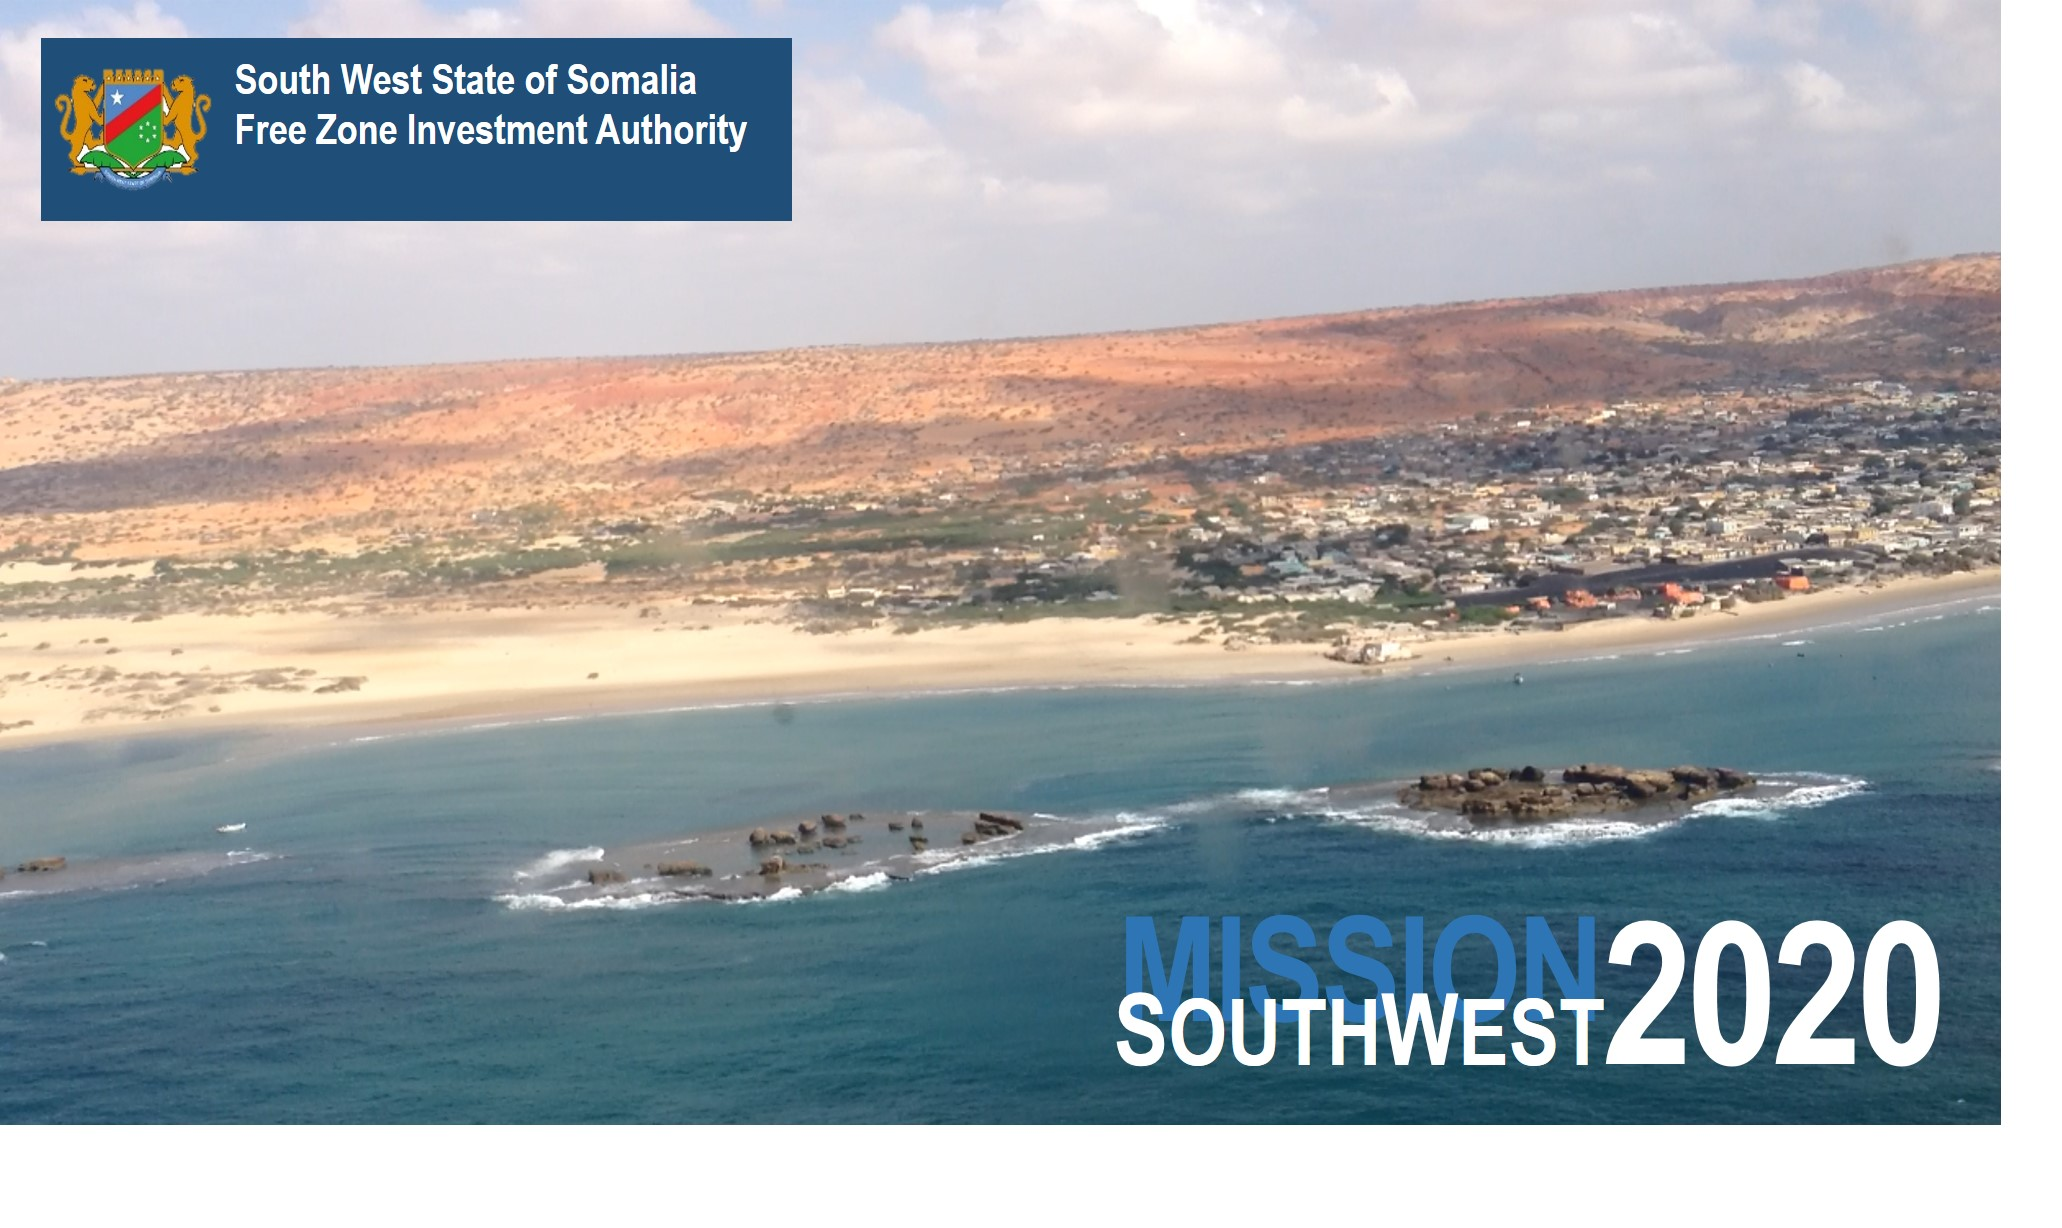 The South West State Free Zone Investment Authority has been developed according to standards outlined in the Somali Federal Constitution and the National Development Plan, as well as the South West State Strategic Plan.